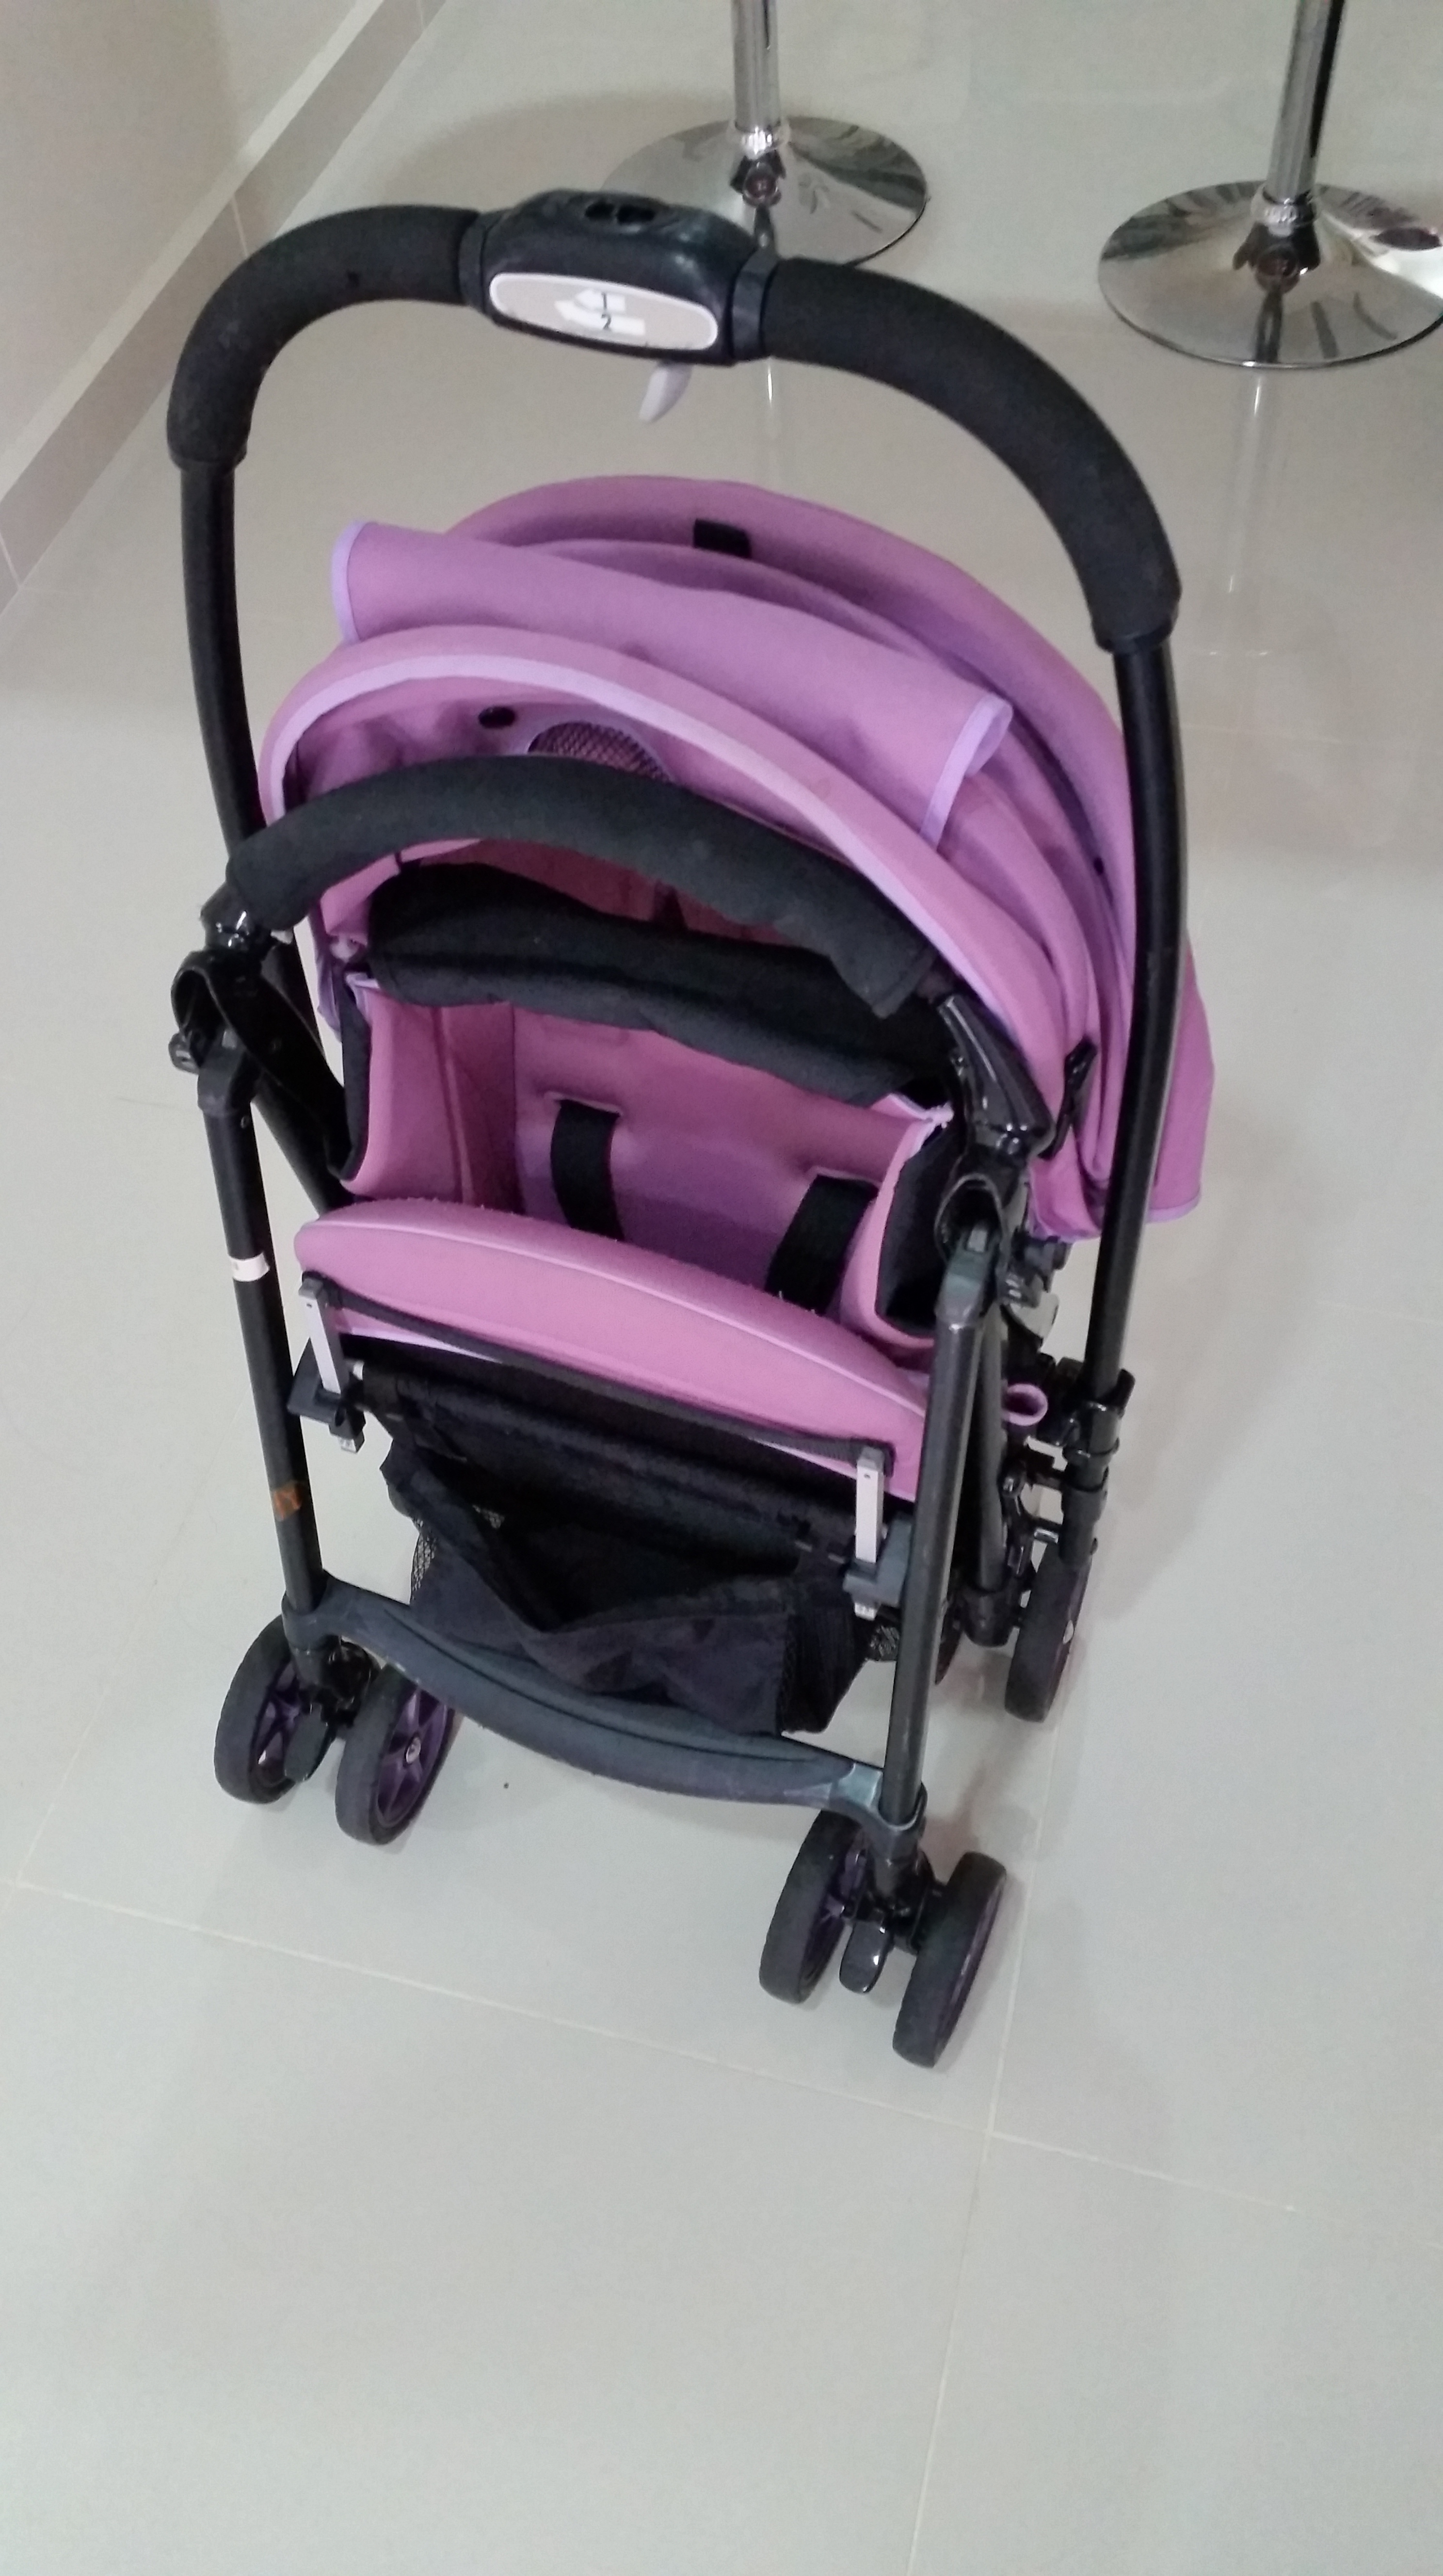 Combi Stroller Models Combi Well Comfort Review Preloved For Less Malaysia